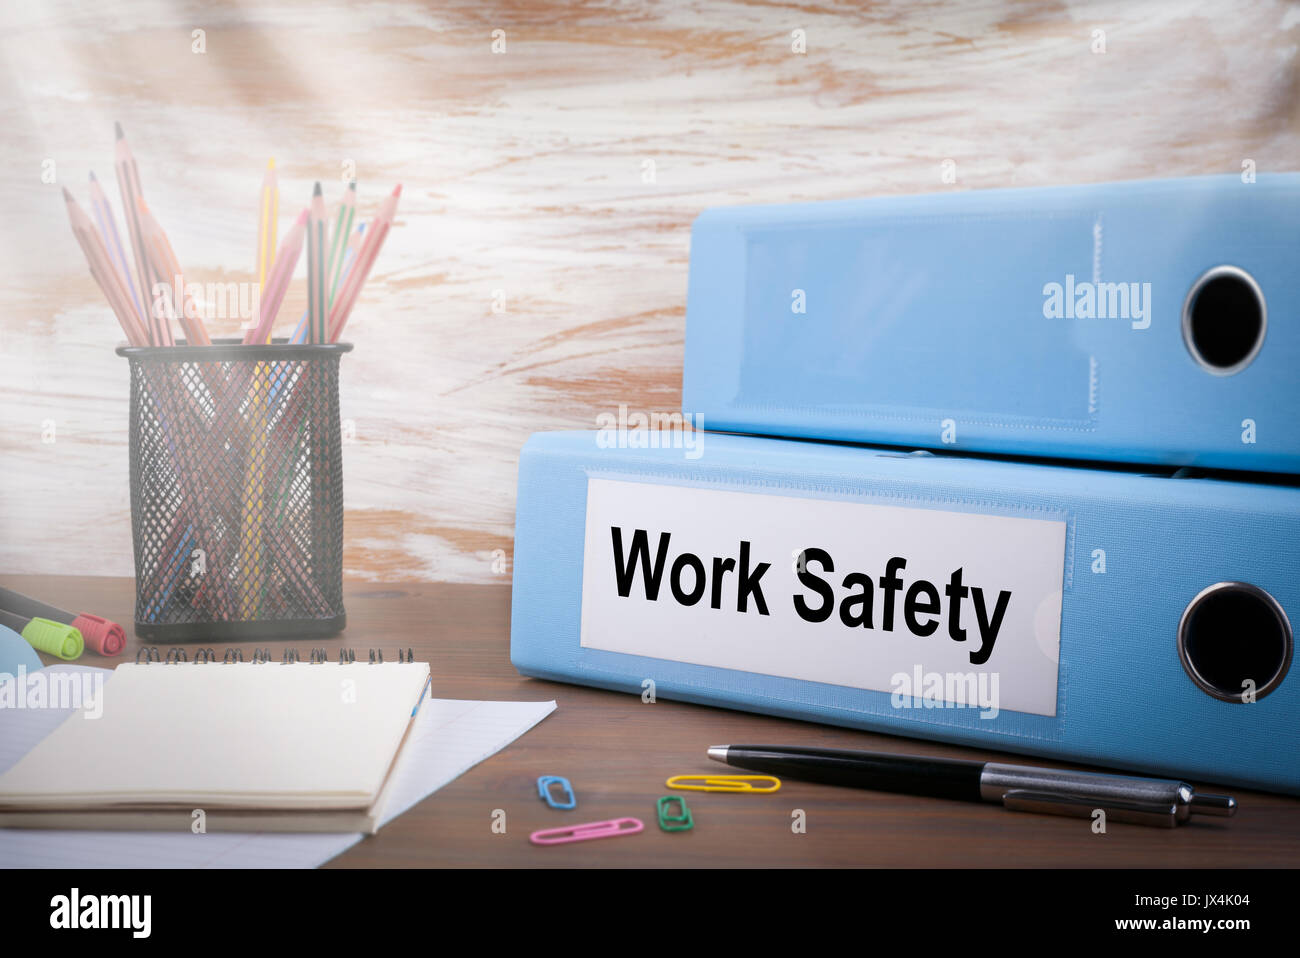 Work Safety, Office Binder on Wooden Desk. On the table colored pencils, pen, notebook paper. - Stock Image